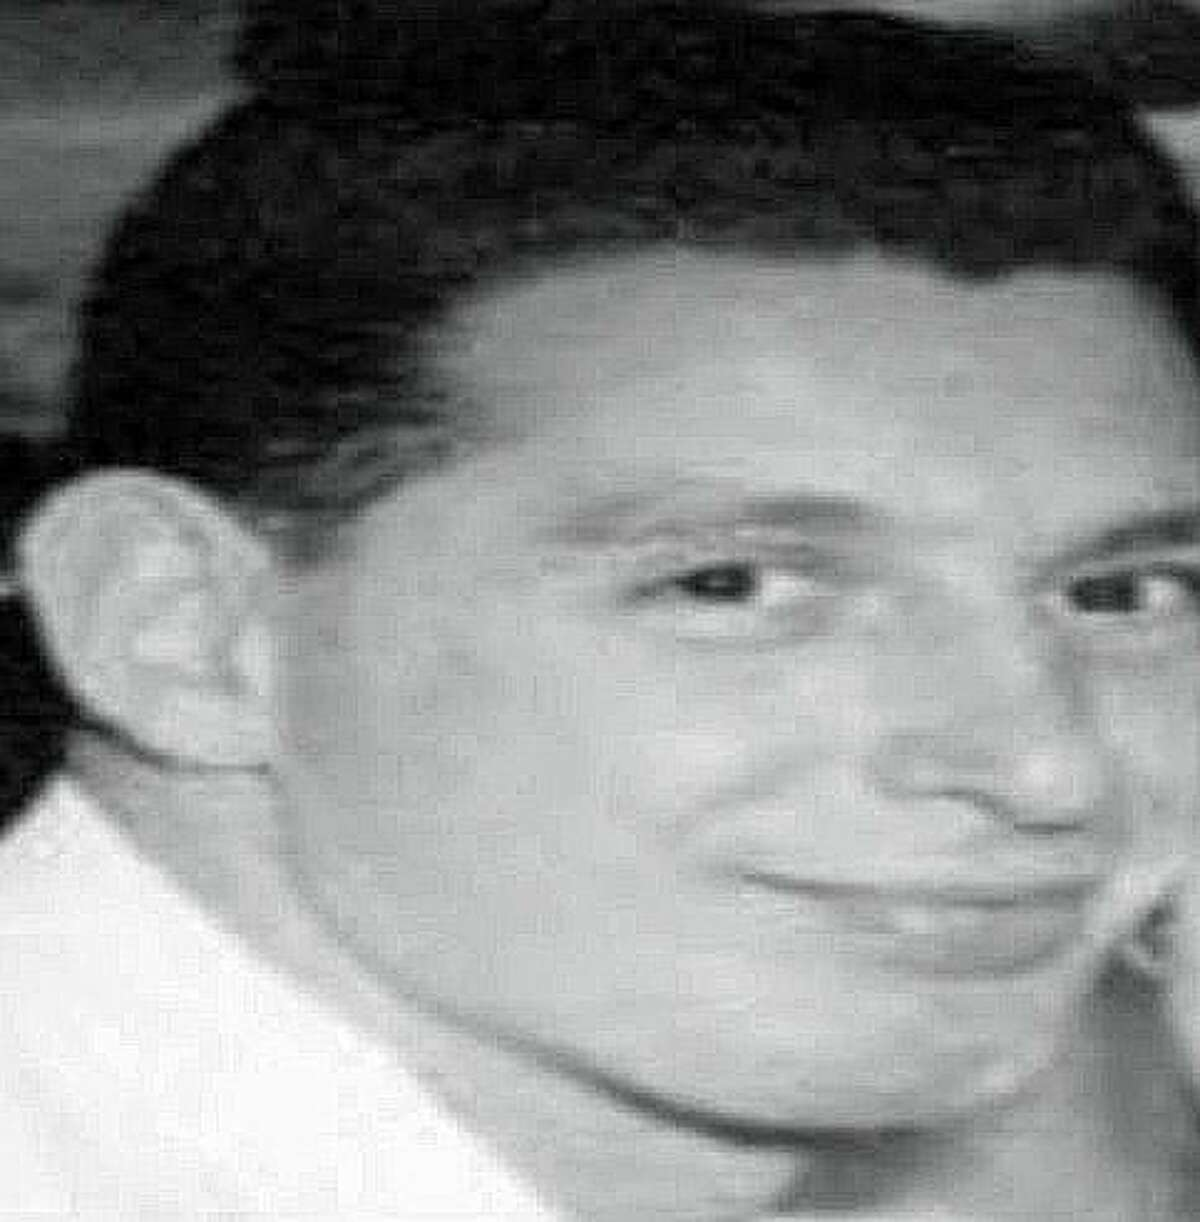 Vito Frank Bova, 83, who worked at the Stamford Housing Authority for nearly four decades, died April 19 from complications due to COVID-19, according to his obituary.